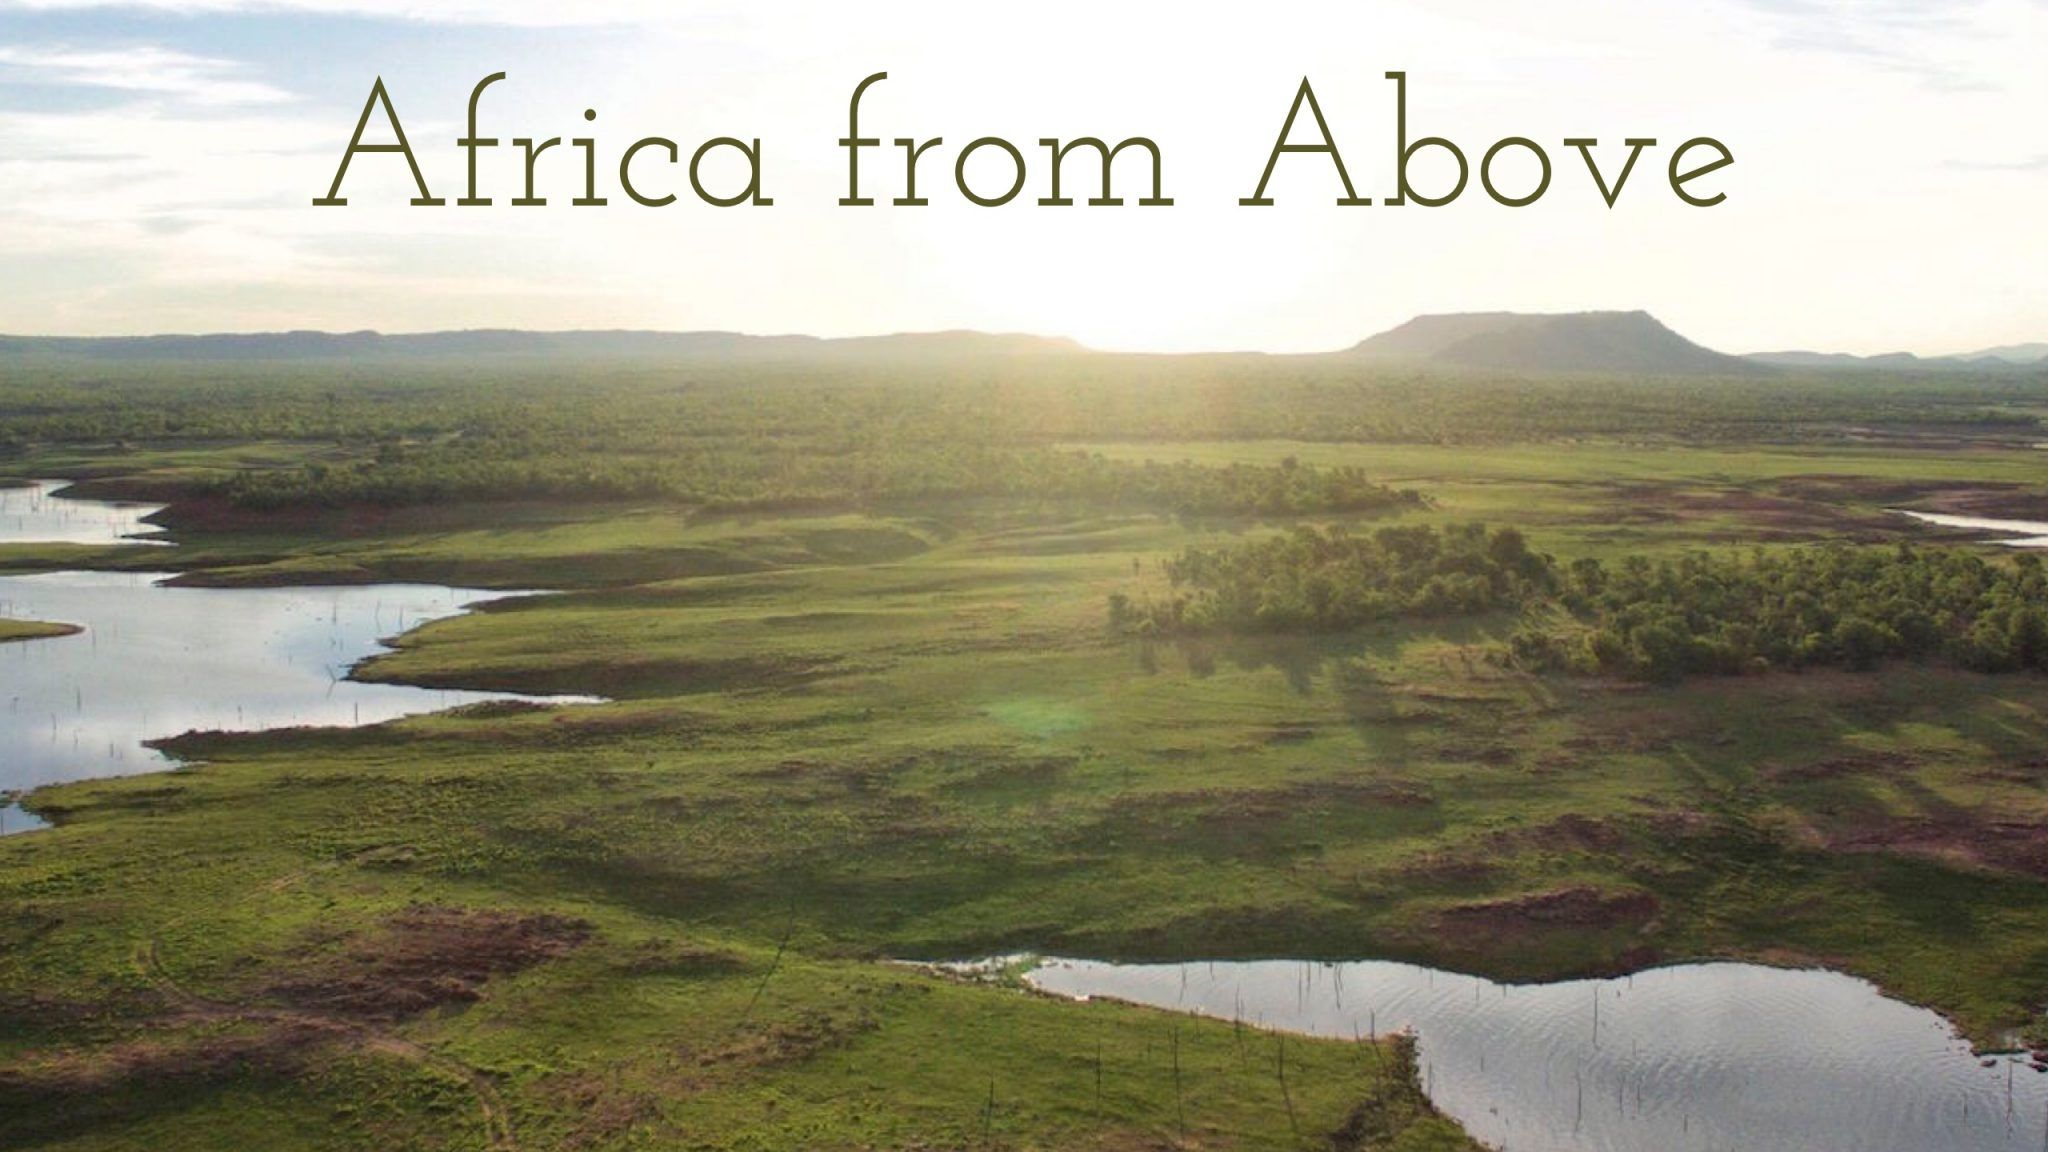 Our amazing collection of Southern Africa photos. Featuring South Africa, Mozambique, Lesotho, Namibia, Zimbabwe, and Zambia.